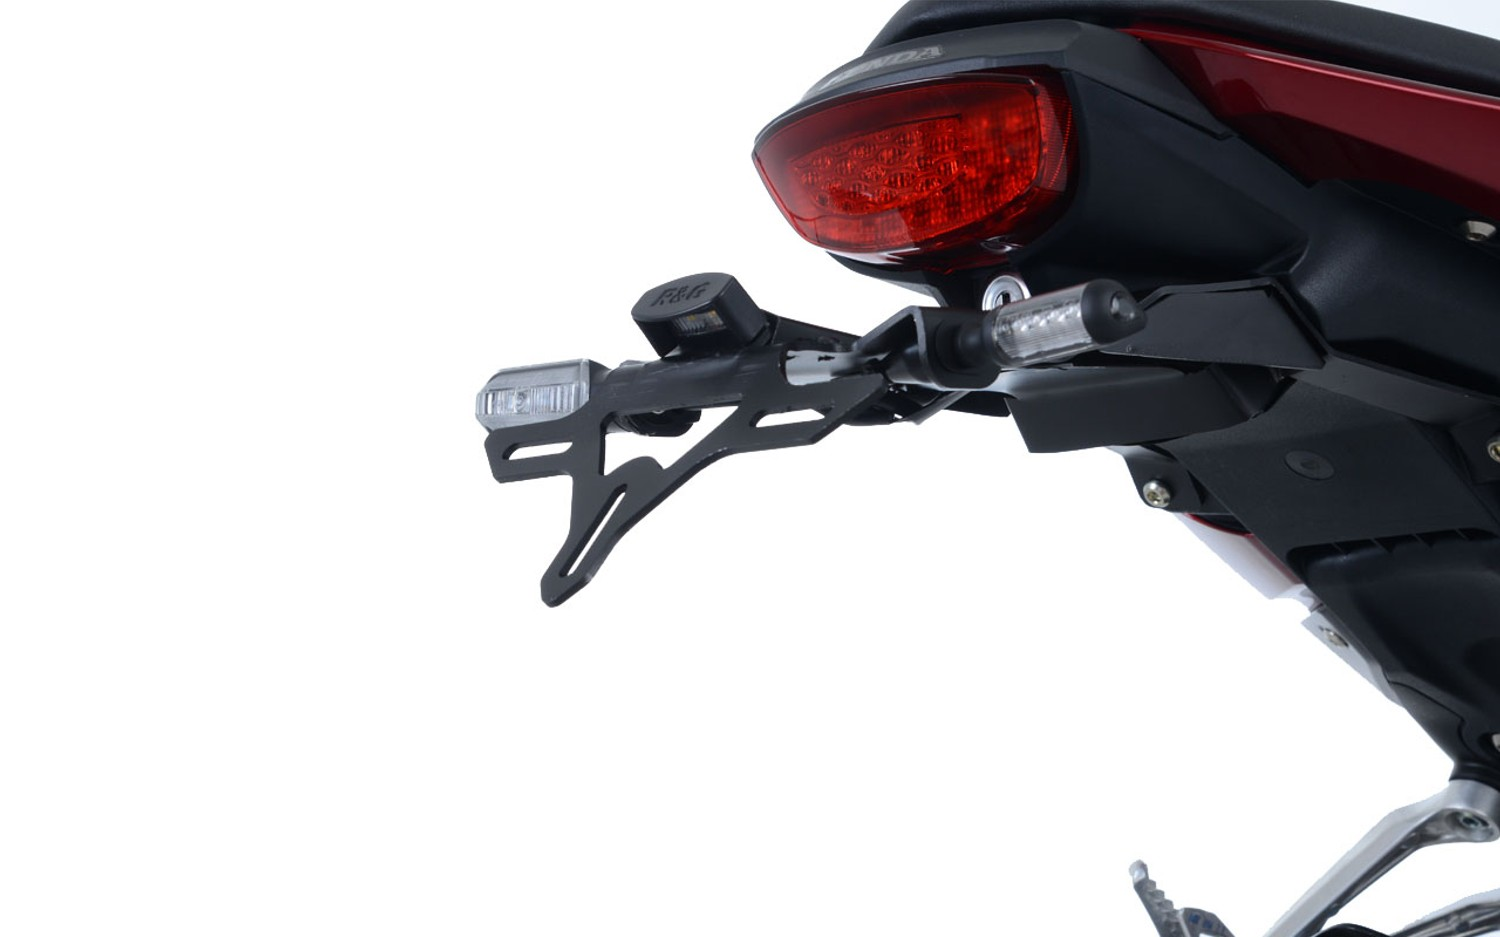 Nearest Honda Dealer >> Tail Tidy for the Honda CB125R '18- & CB300R '19- models